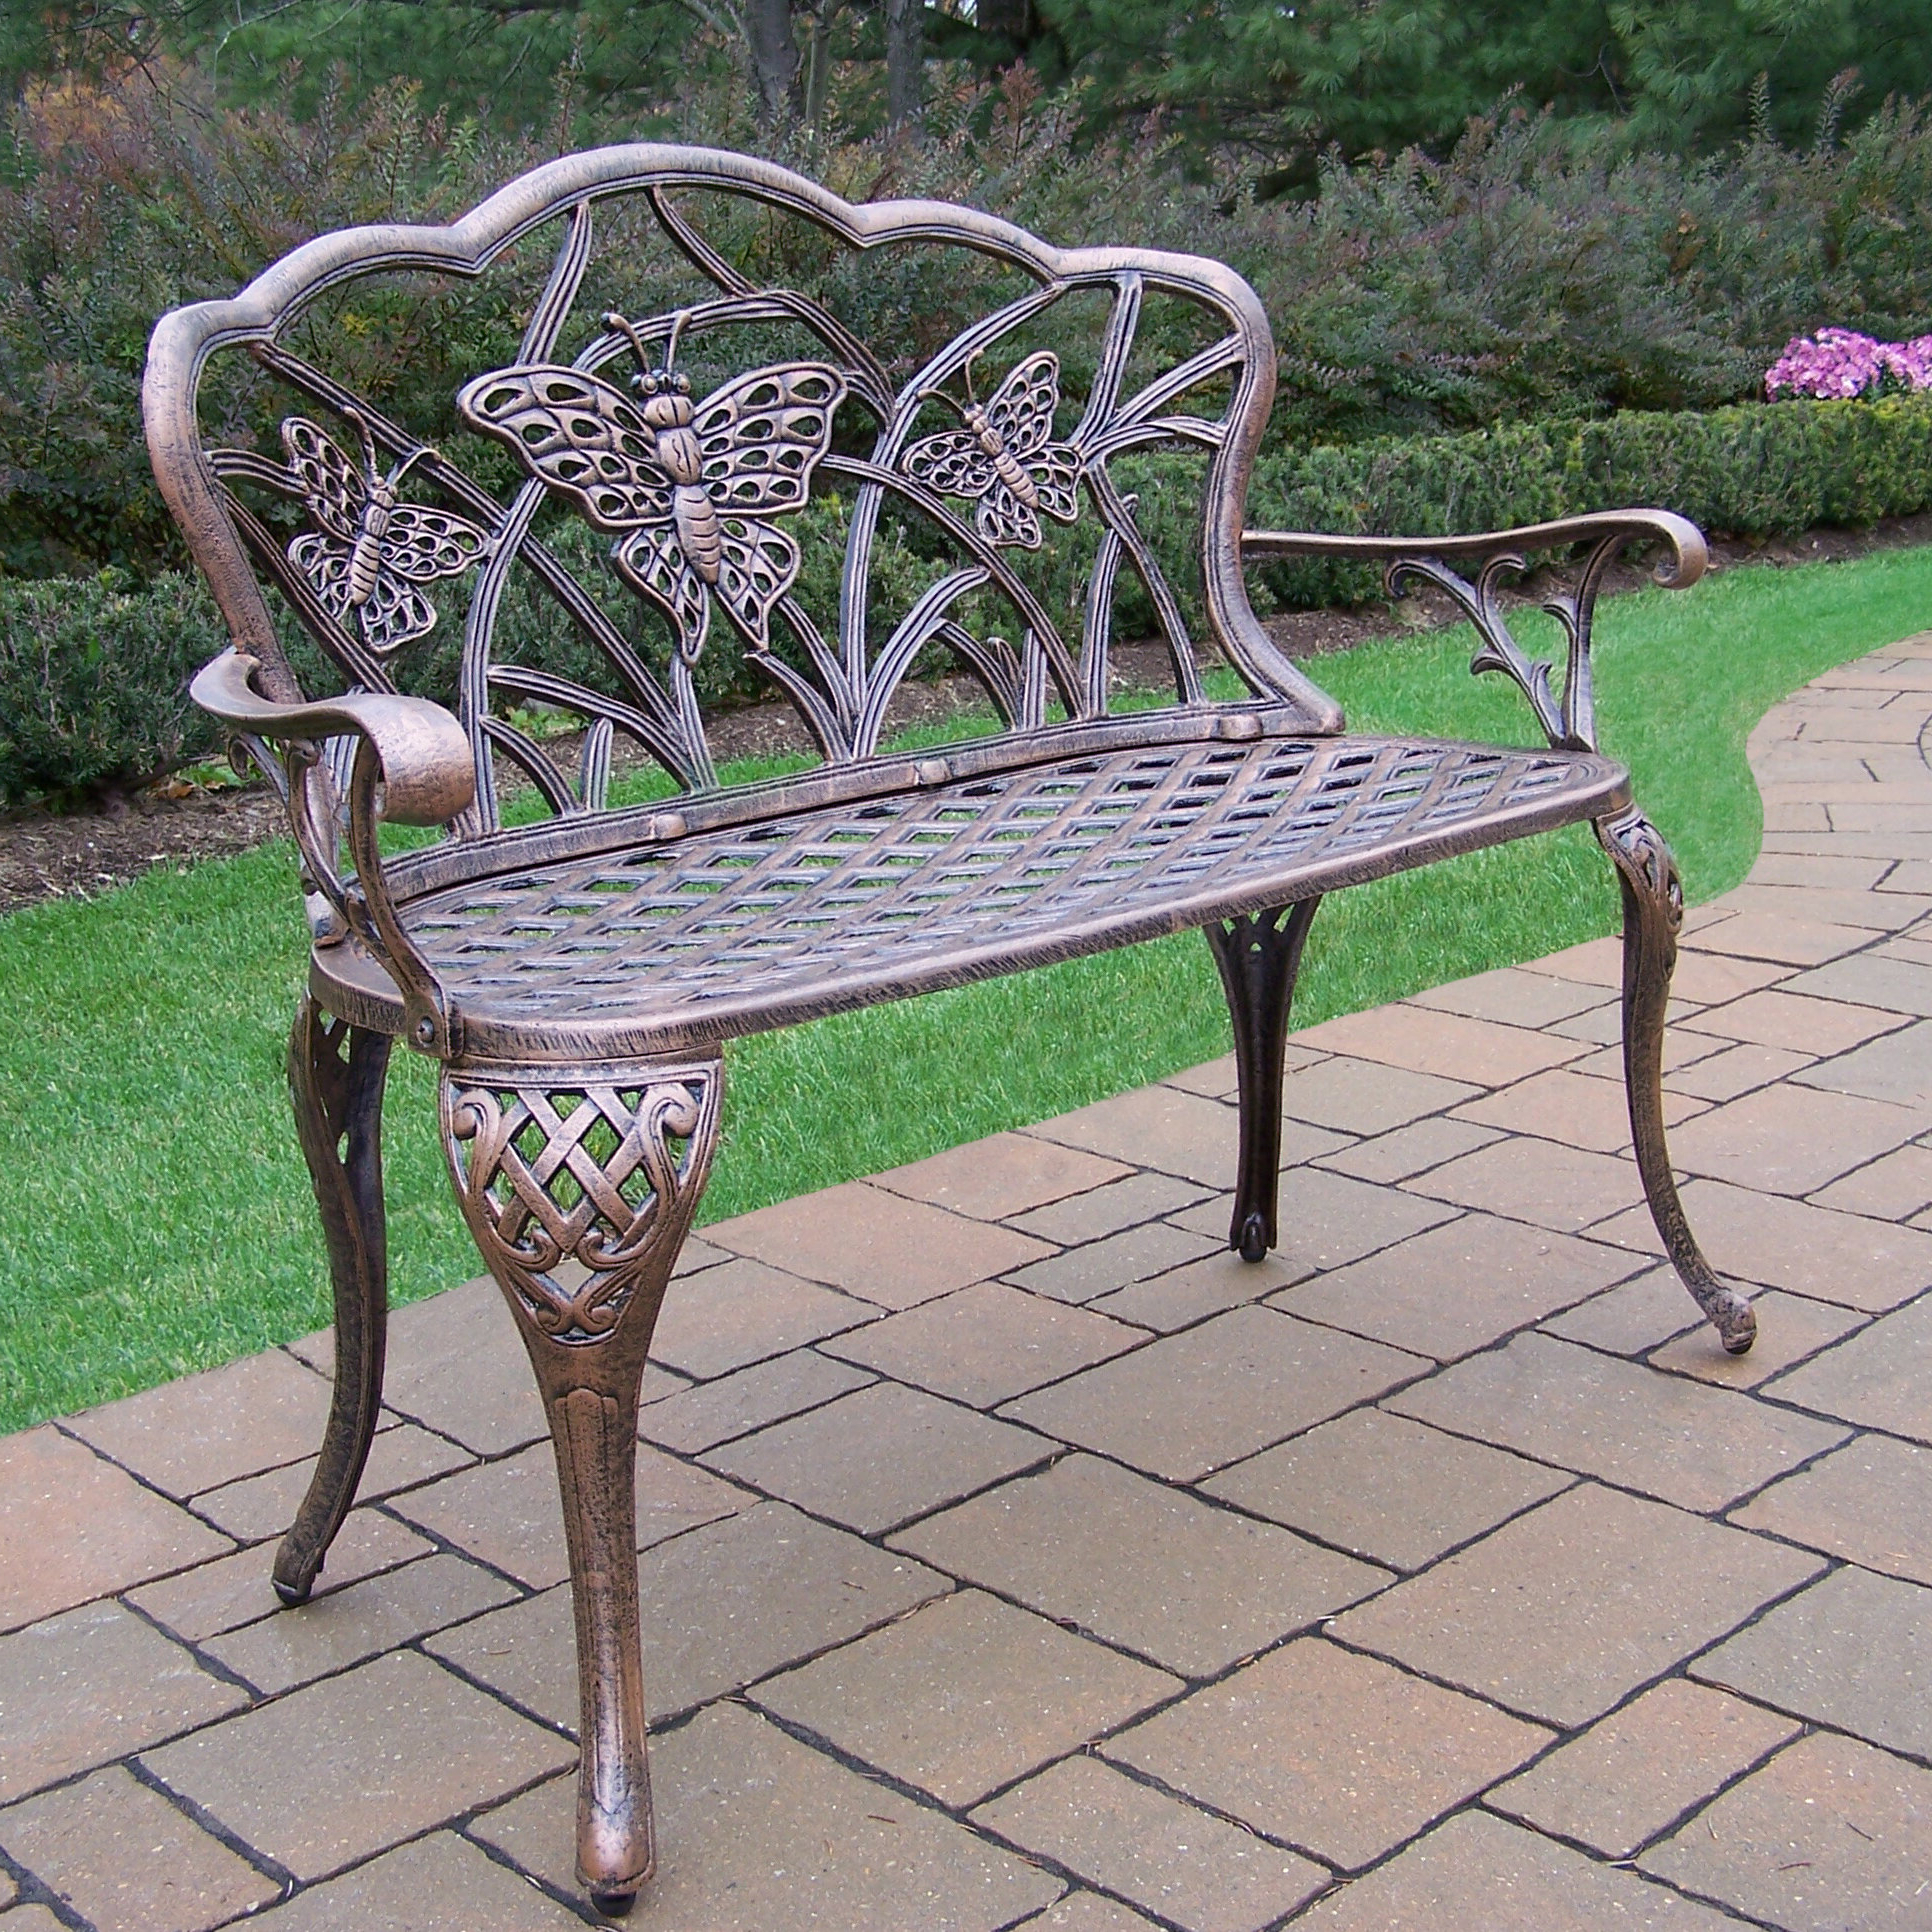 Wensley Aluminum Garden Bench Throughout Current Caryn Colored Butterflies Metal Garden Benches (View 21 of 30)